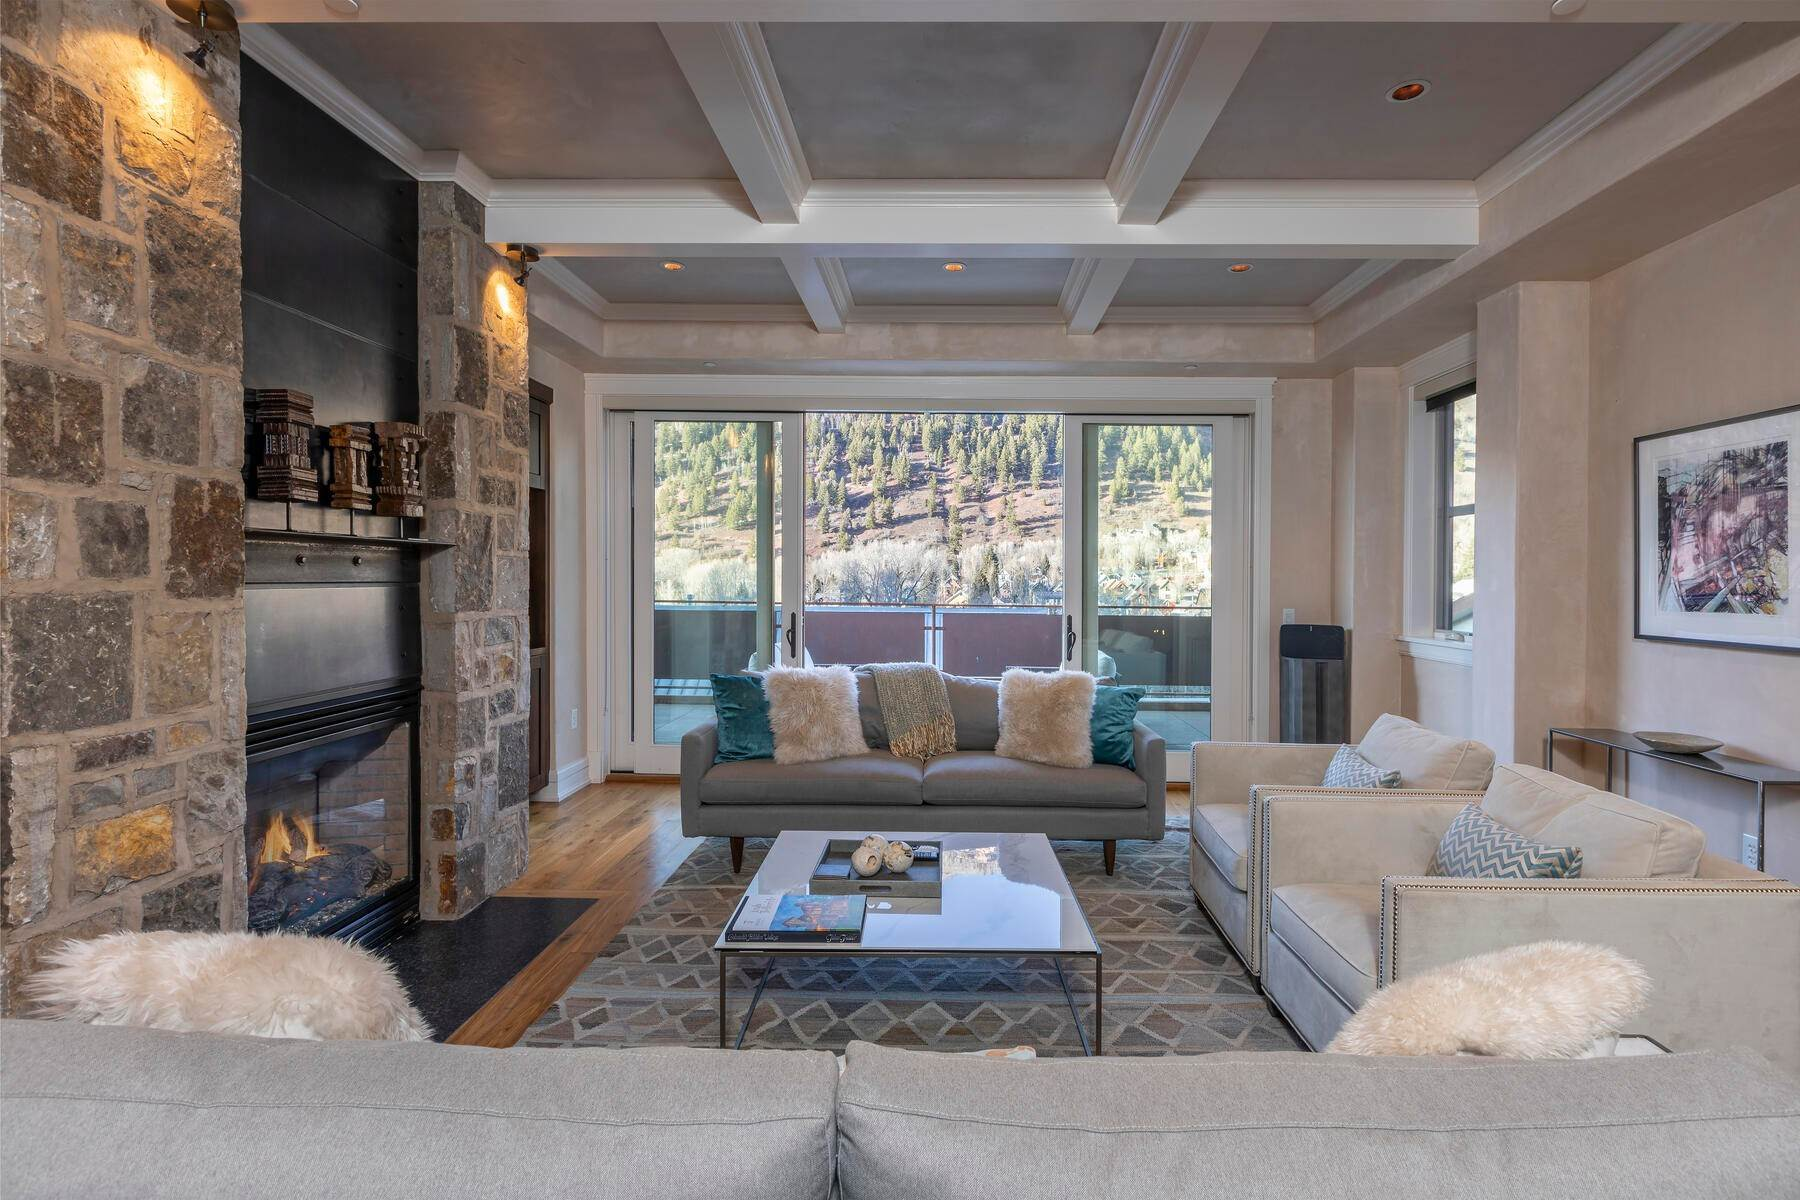 Condominiums for Sale at Element 52 - South 2A 398 S Davis Street, South 2A Telluride, Colorado 81435 United States